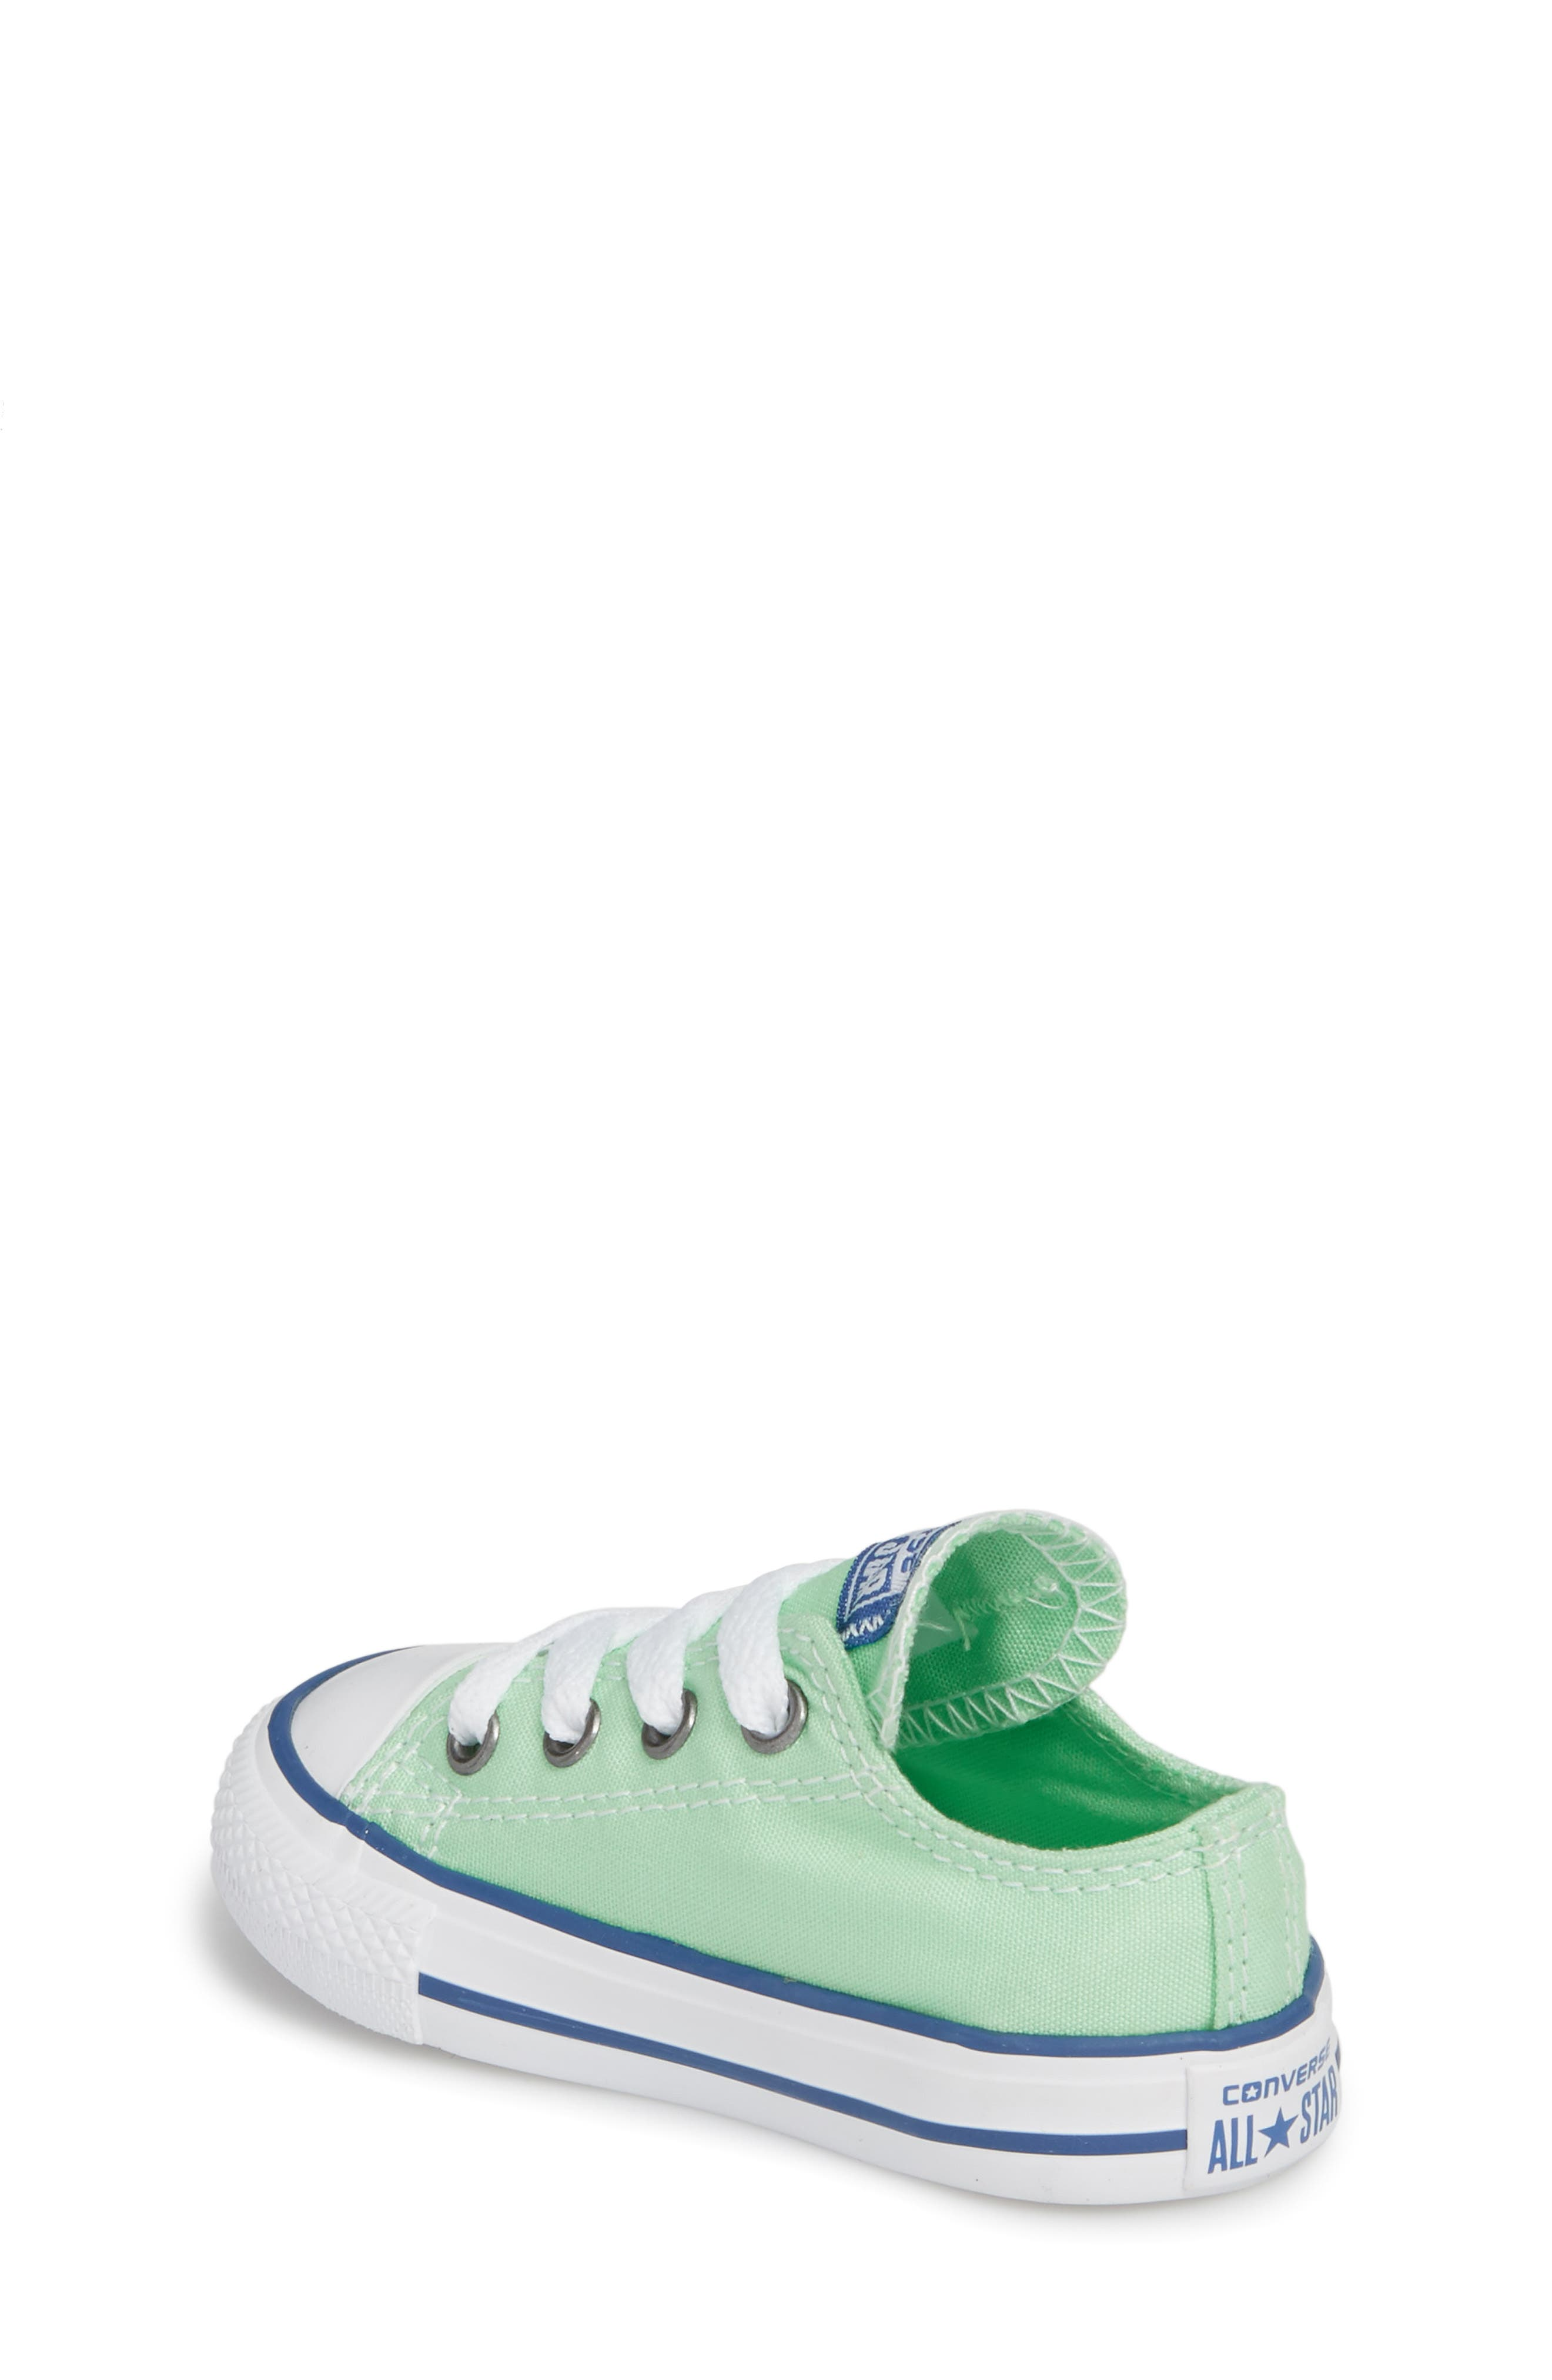 Alternate Image 2  - Converse Chuck Taylor® All Star® 'Ox' Low Top Sneaker (Baby, Walker, Toddler & Little Kid)